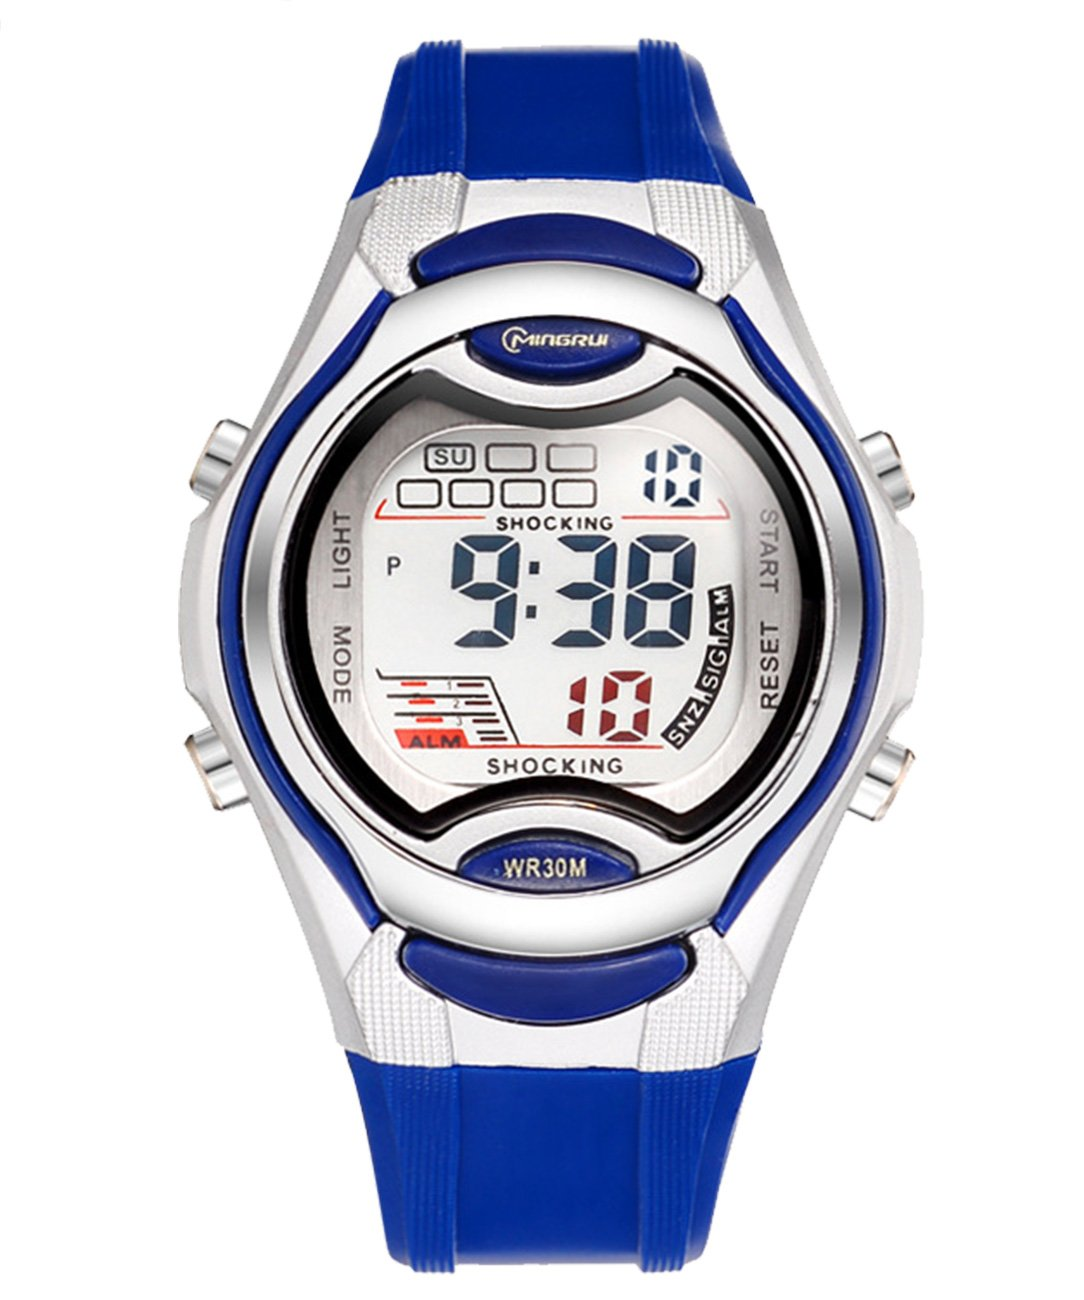 MINGRUI 50M Waterproof Watches Electrical Luminescent with Alarm Calendar Date Window Watch - Blue